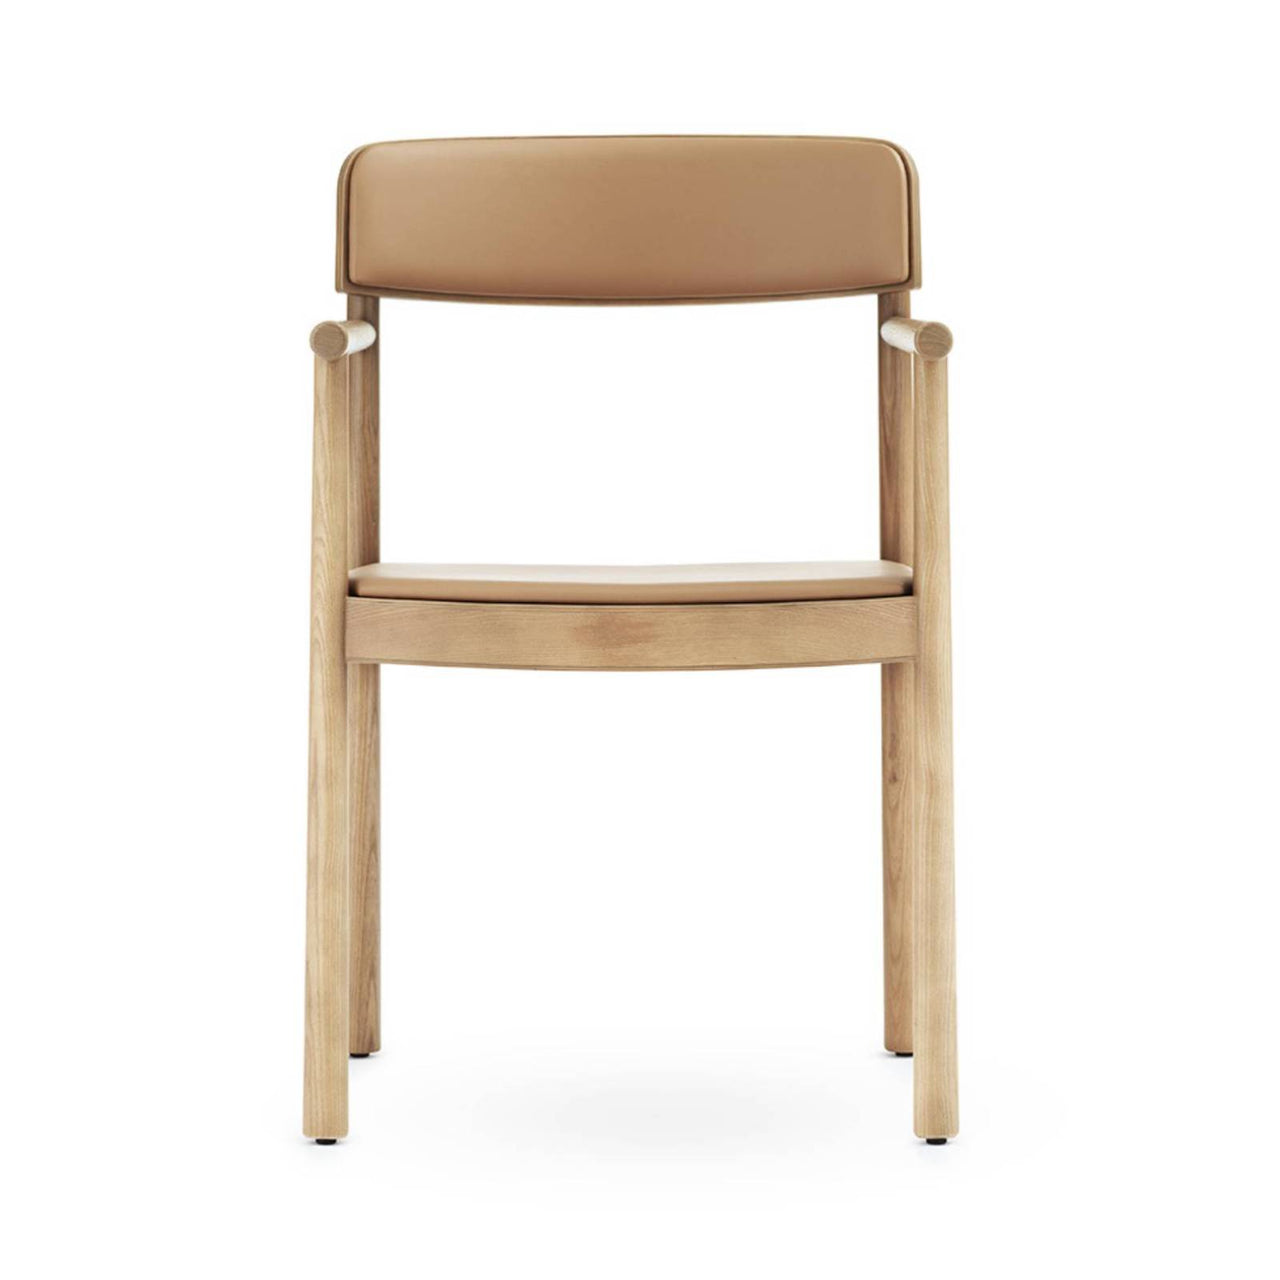 Timb Armchair Upholstery: Tan + Camel Leather